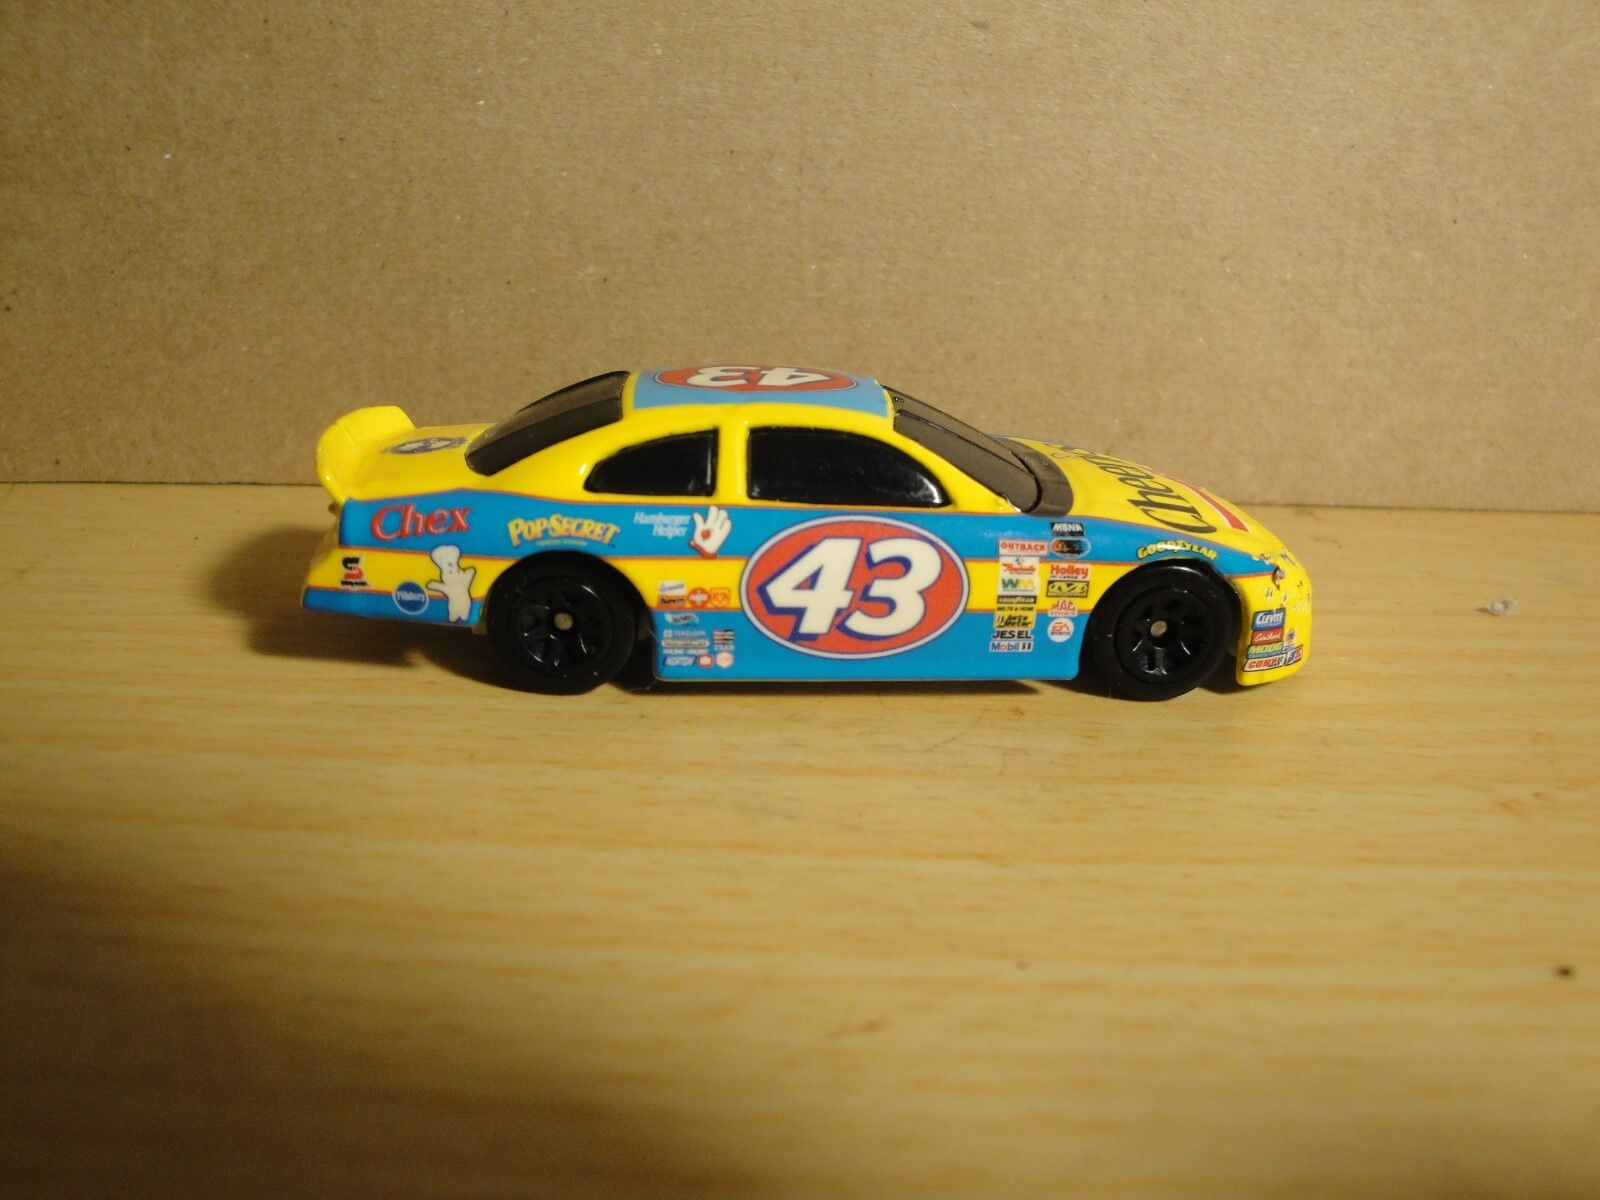 NASCAR John Andretti   Richard Petty Cheerios 2001 Dodge Intrepid Hot Wheels